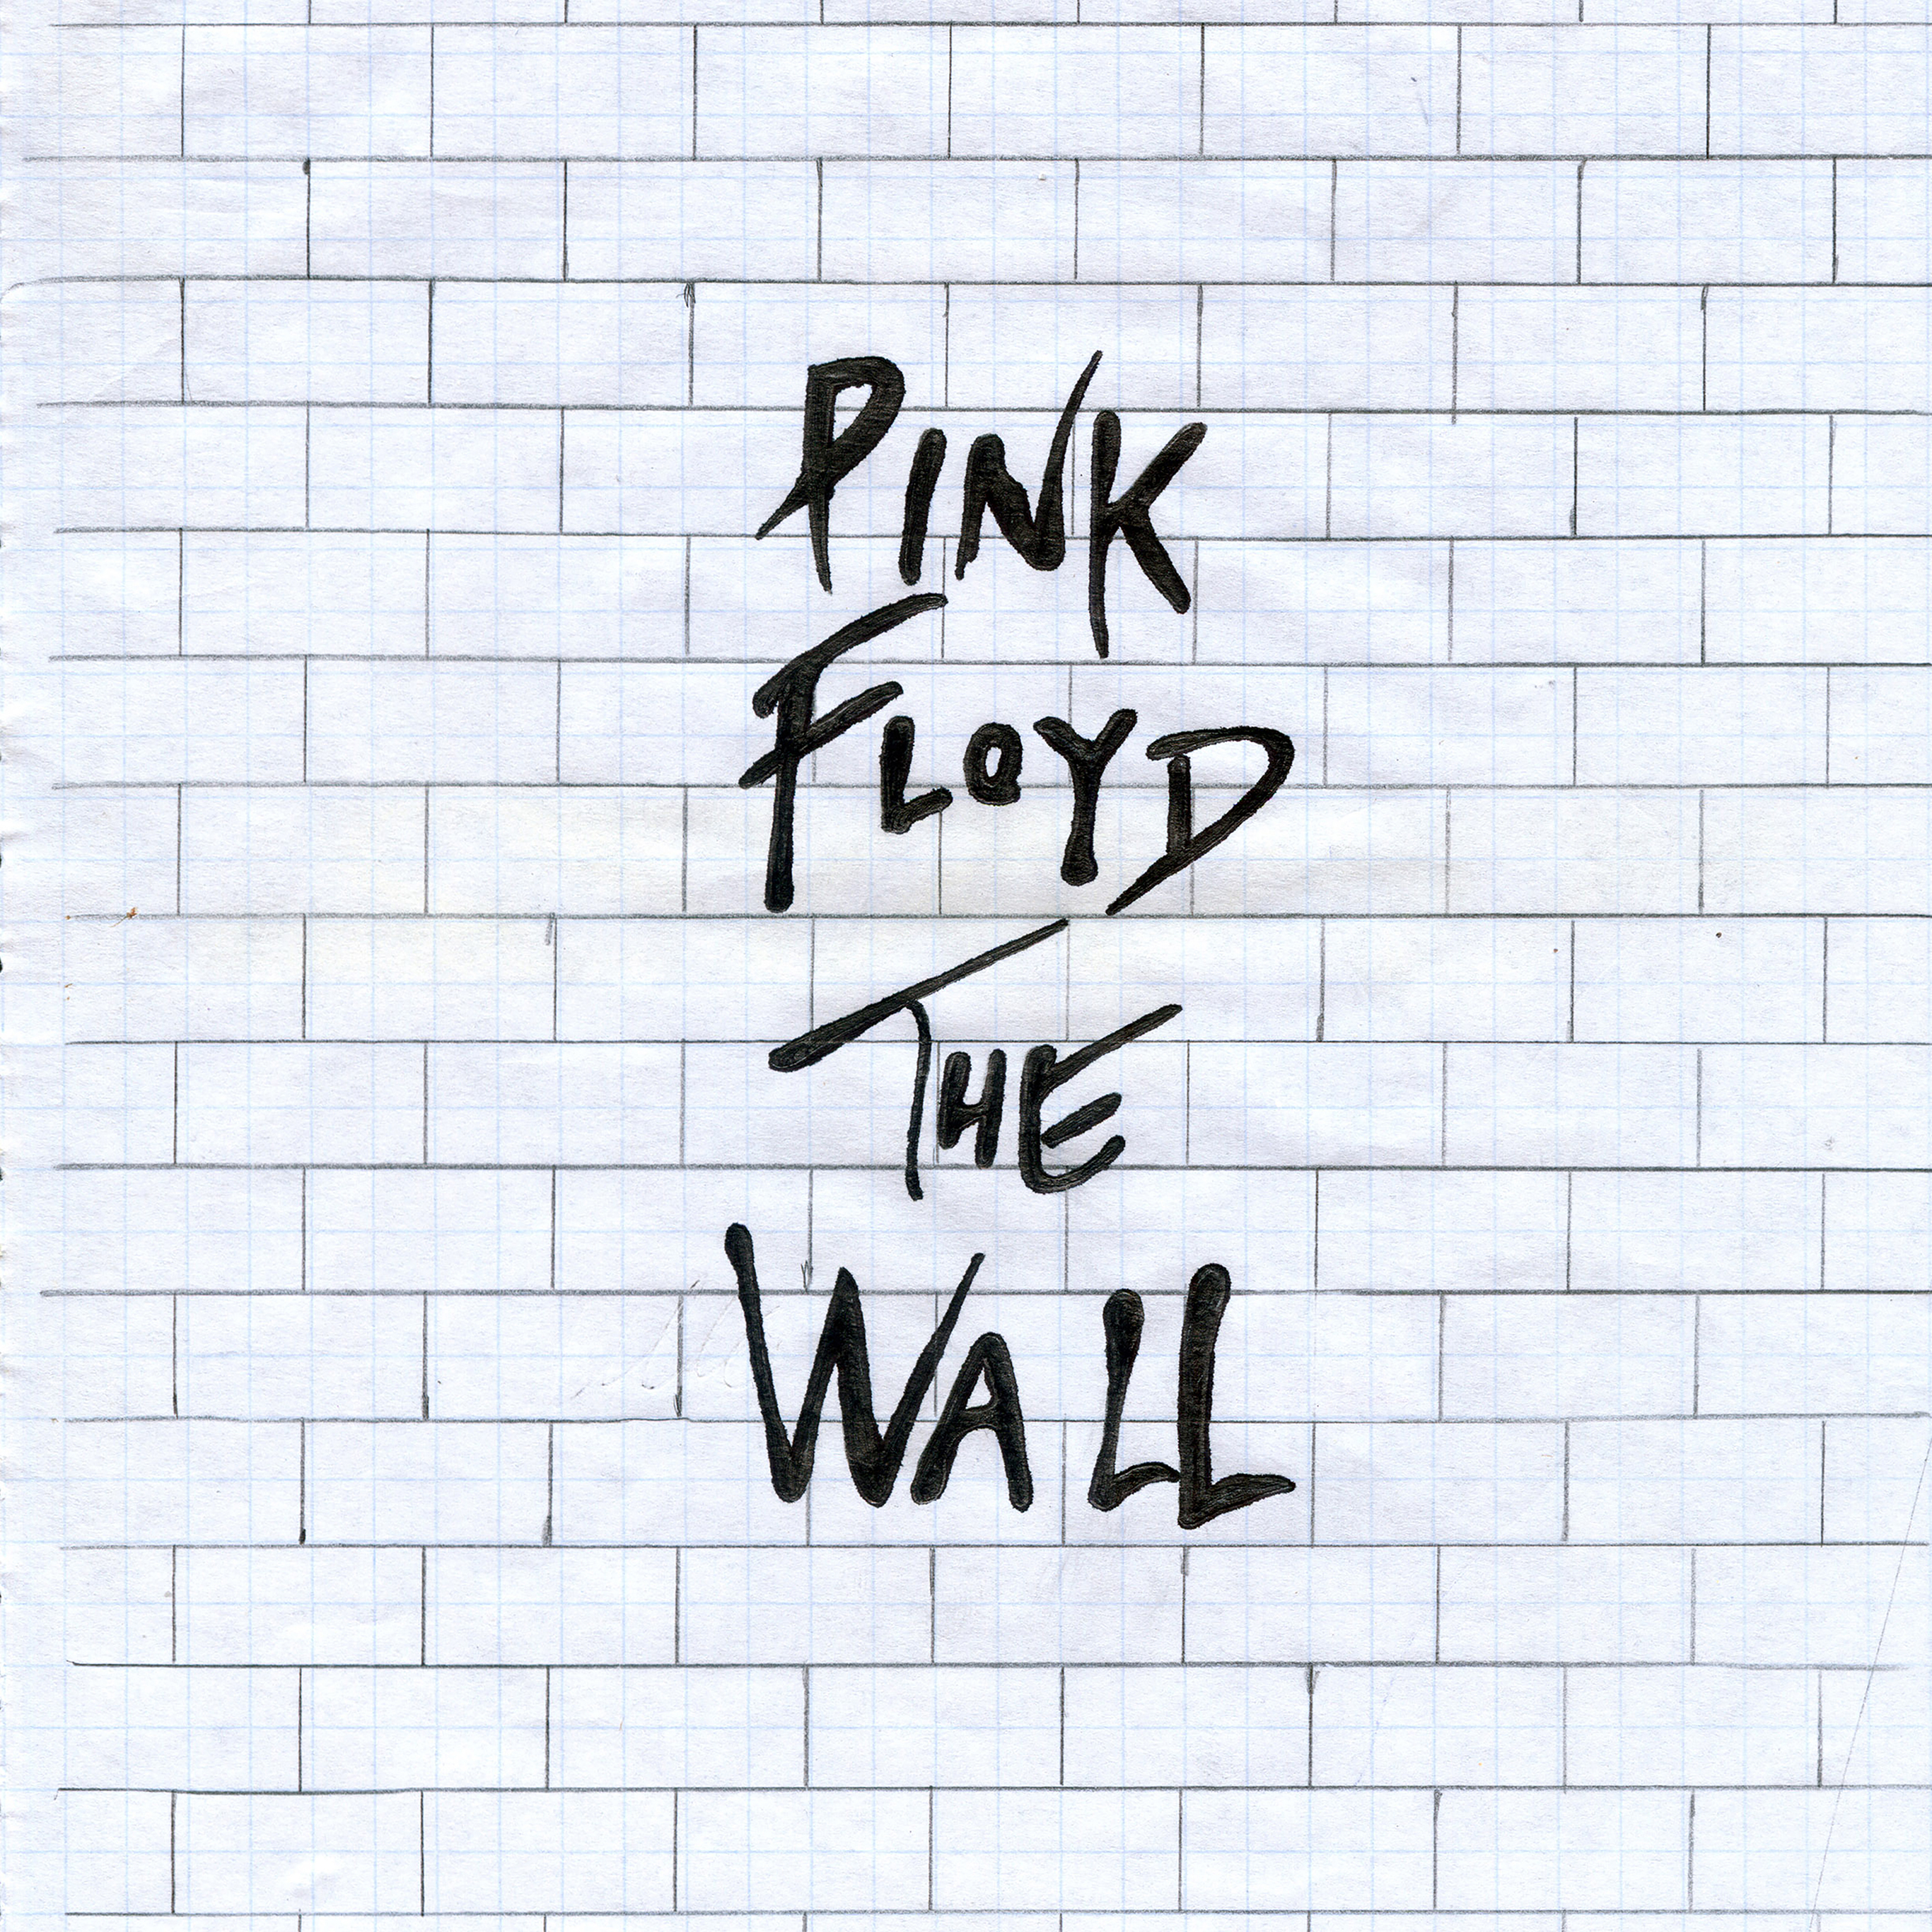 The Wall Pink Floyd: Ab70-wallpaper-pink-floyd-the-wall-album